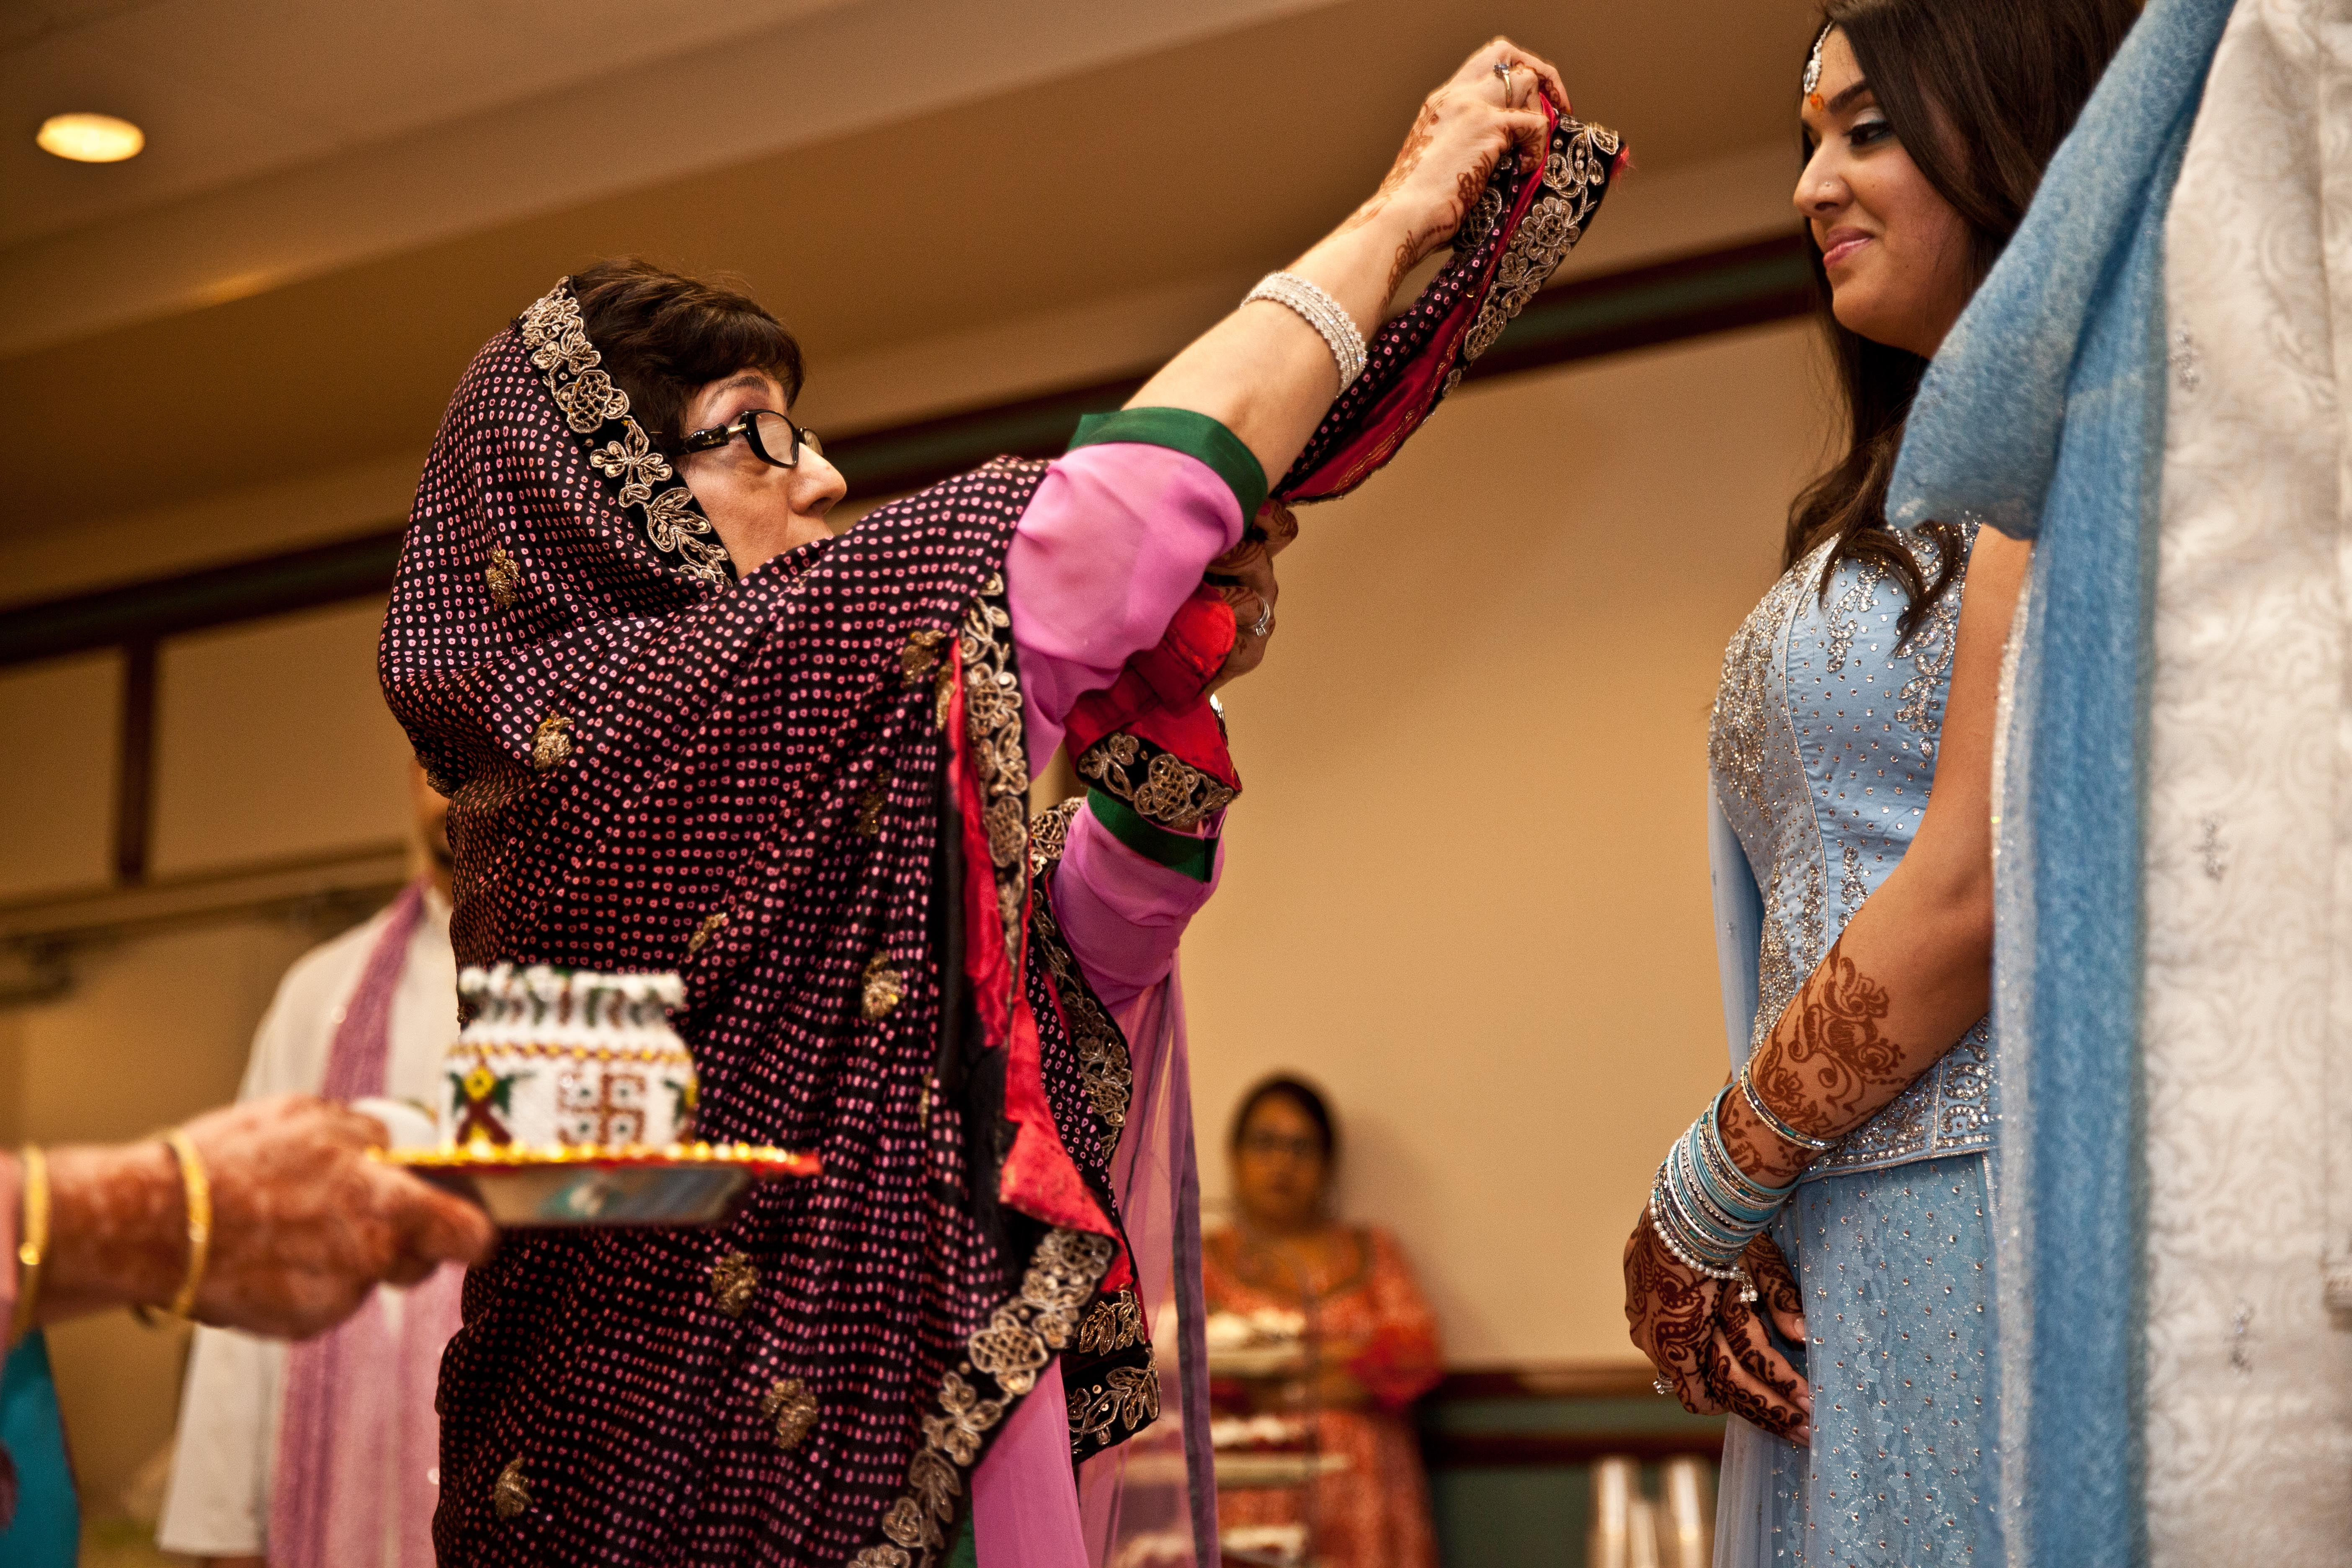 Mother of the groom blessing the married couple during the Ponkwa ceremony in a Toronto Ismaili Muslim wedding